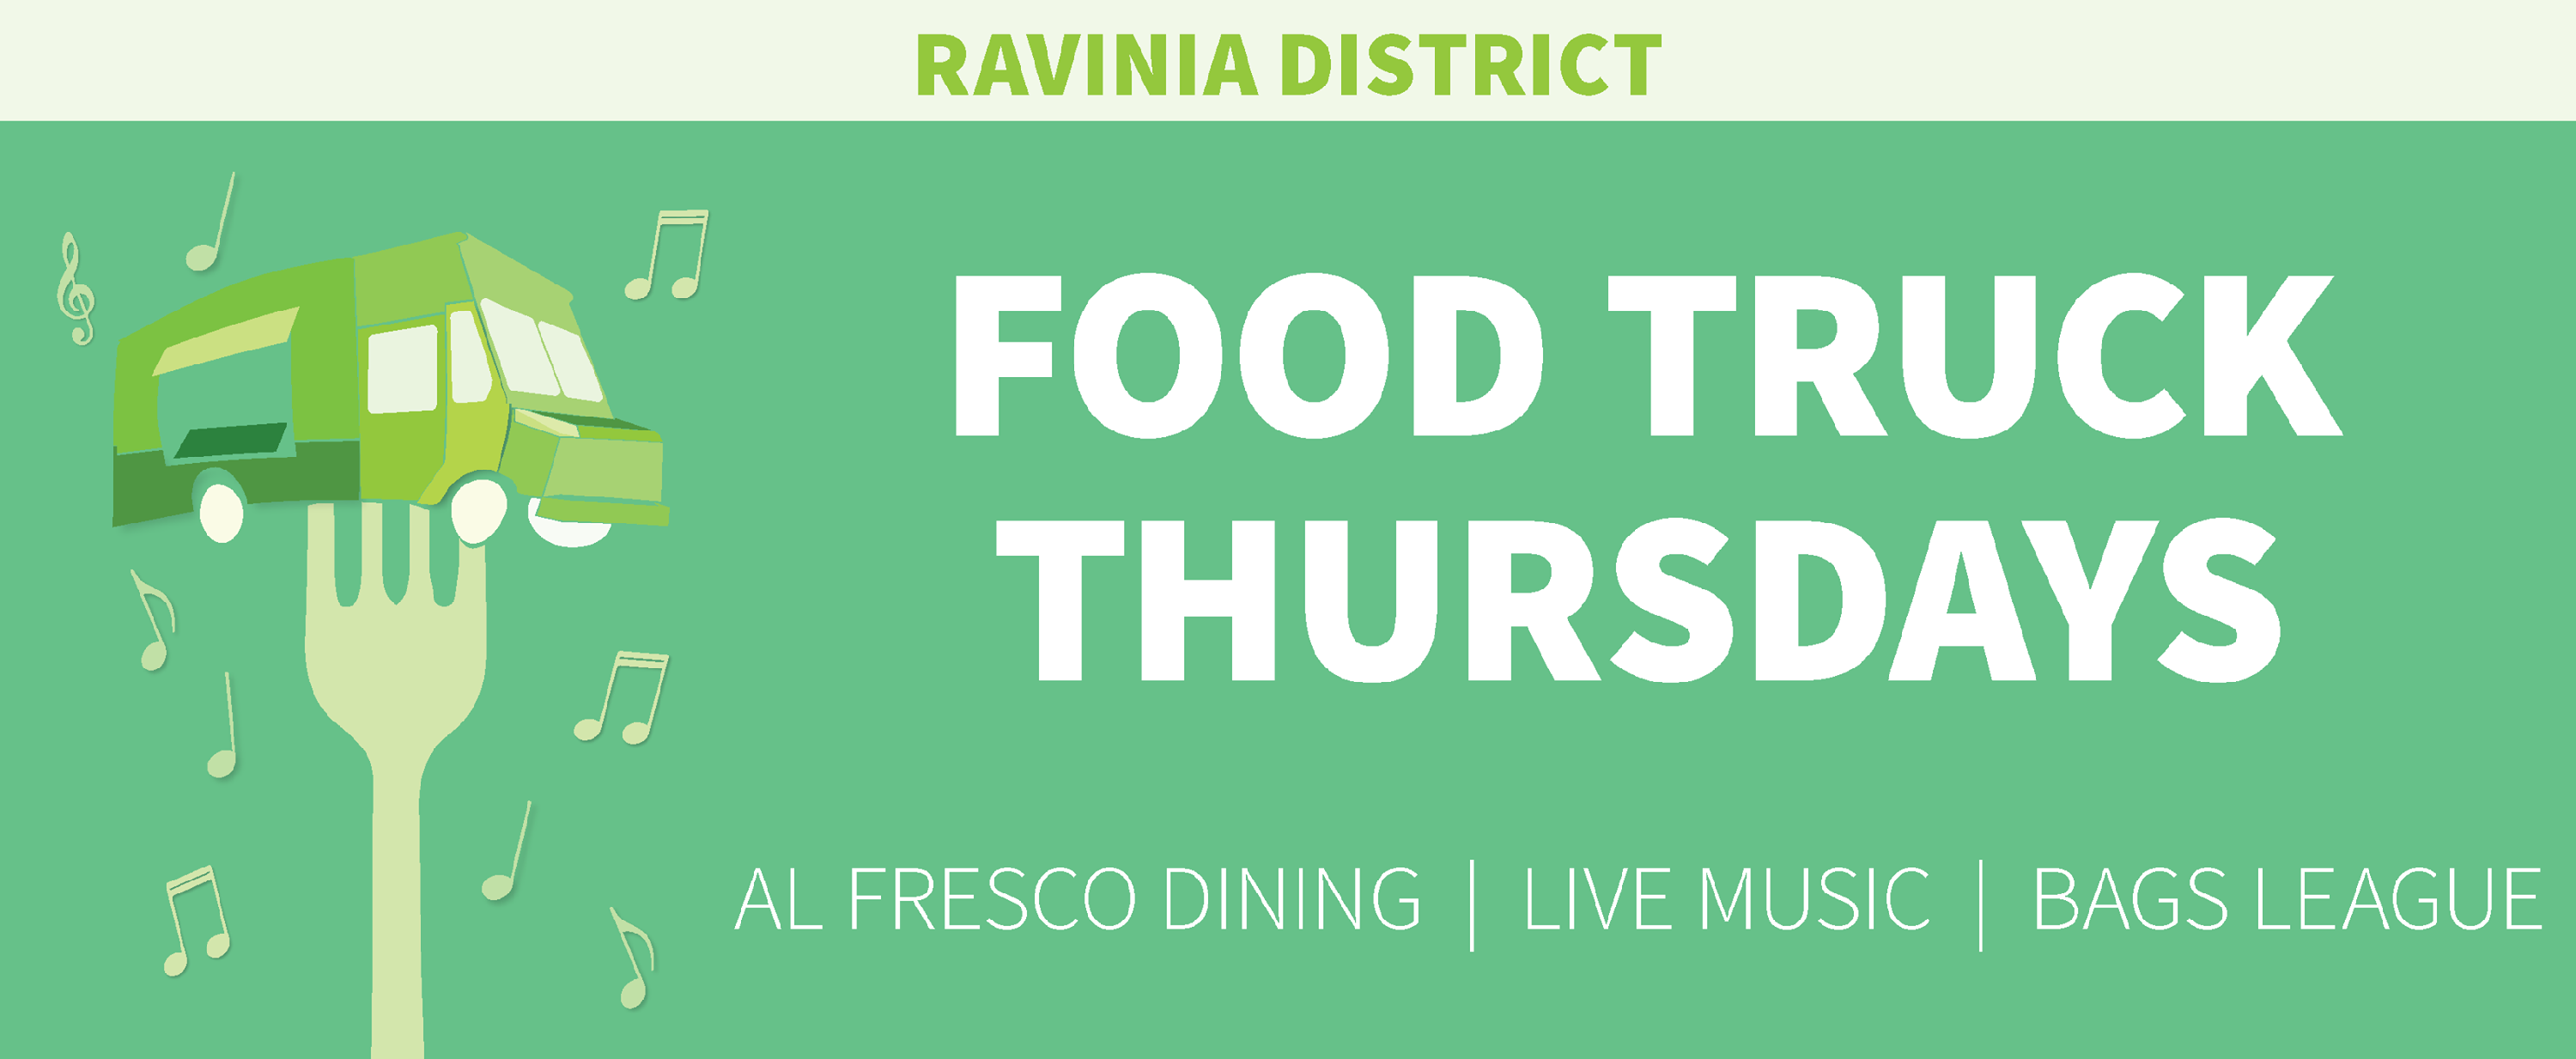 Ravinia District Food Truck Thursdays in Highland Park